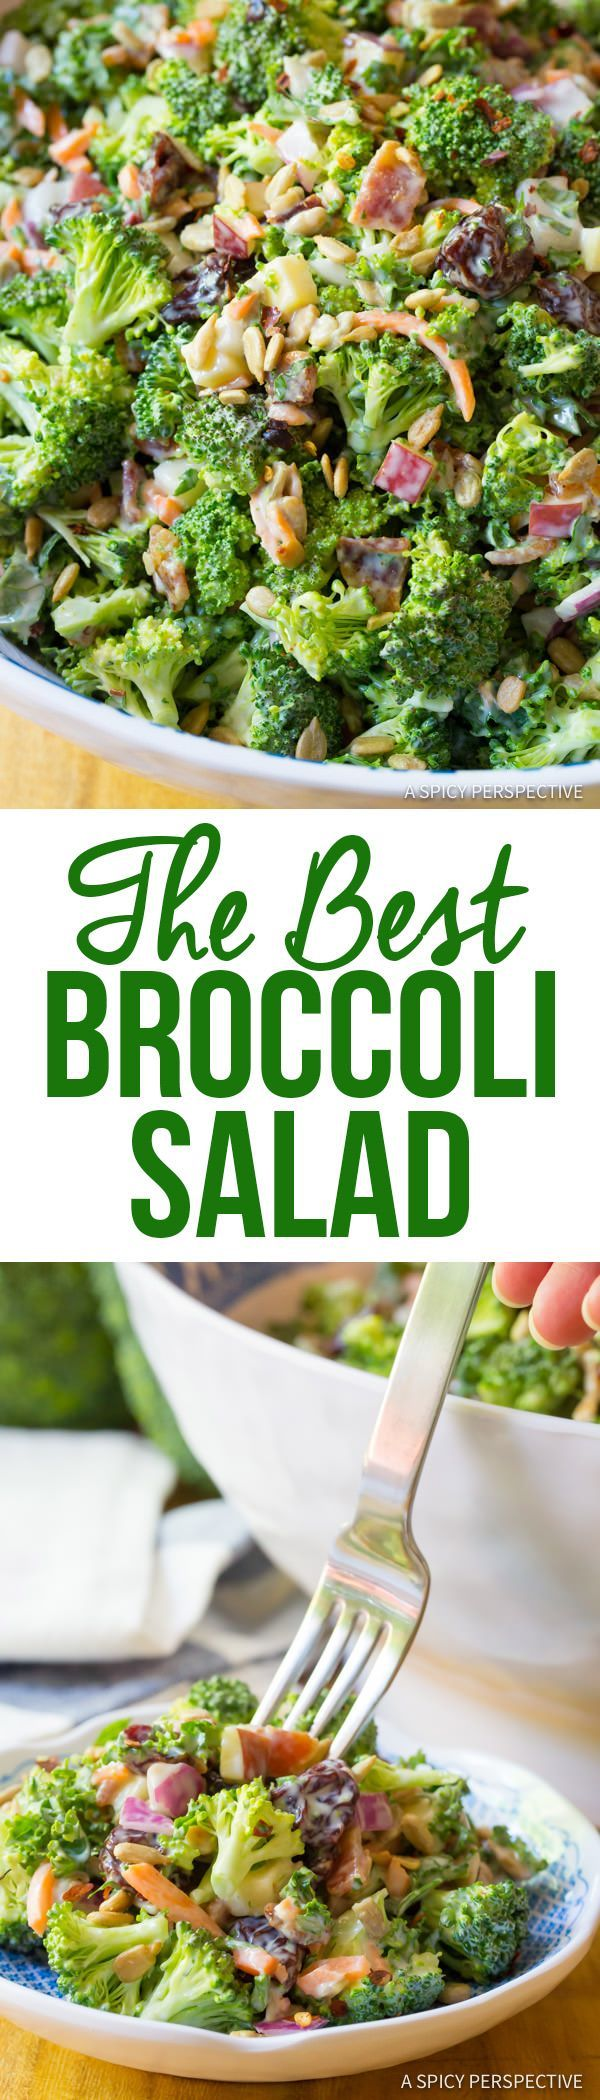 Absolutely The Best Broccoli Salad Recipe